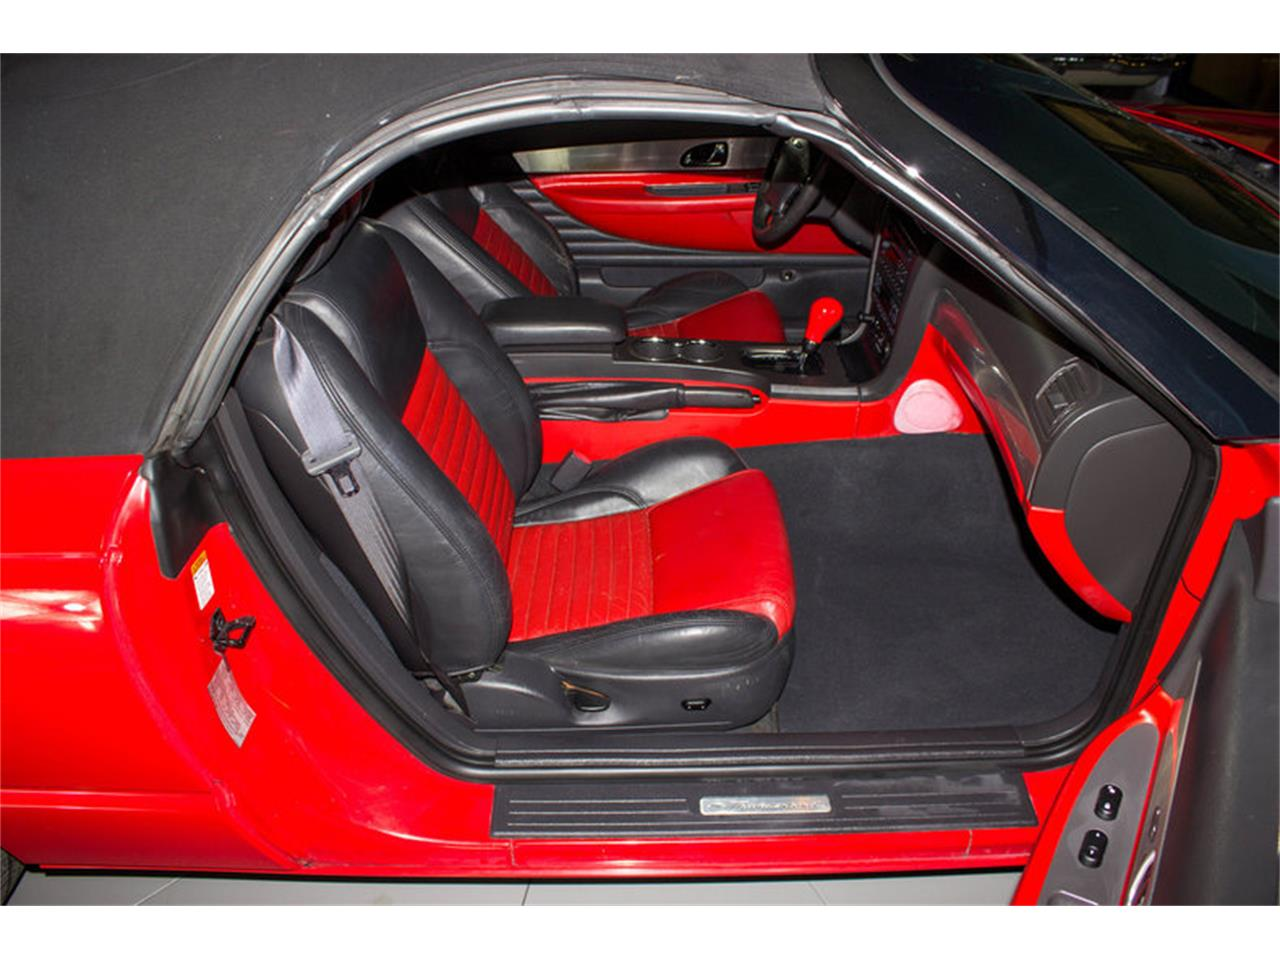 Large Picture of '02 Ford Thunderbird - $14,997.00 - MZFZ